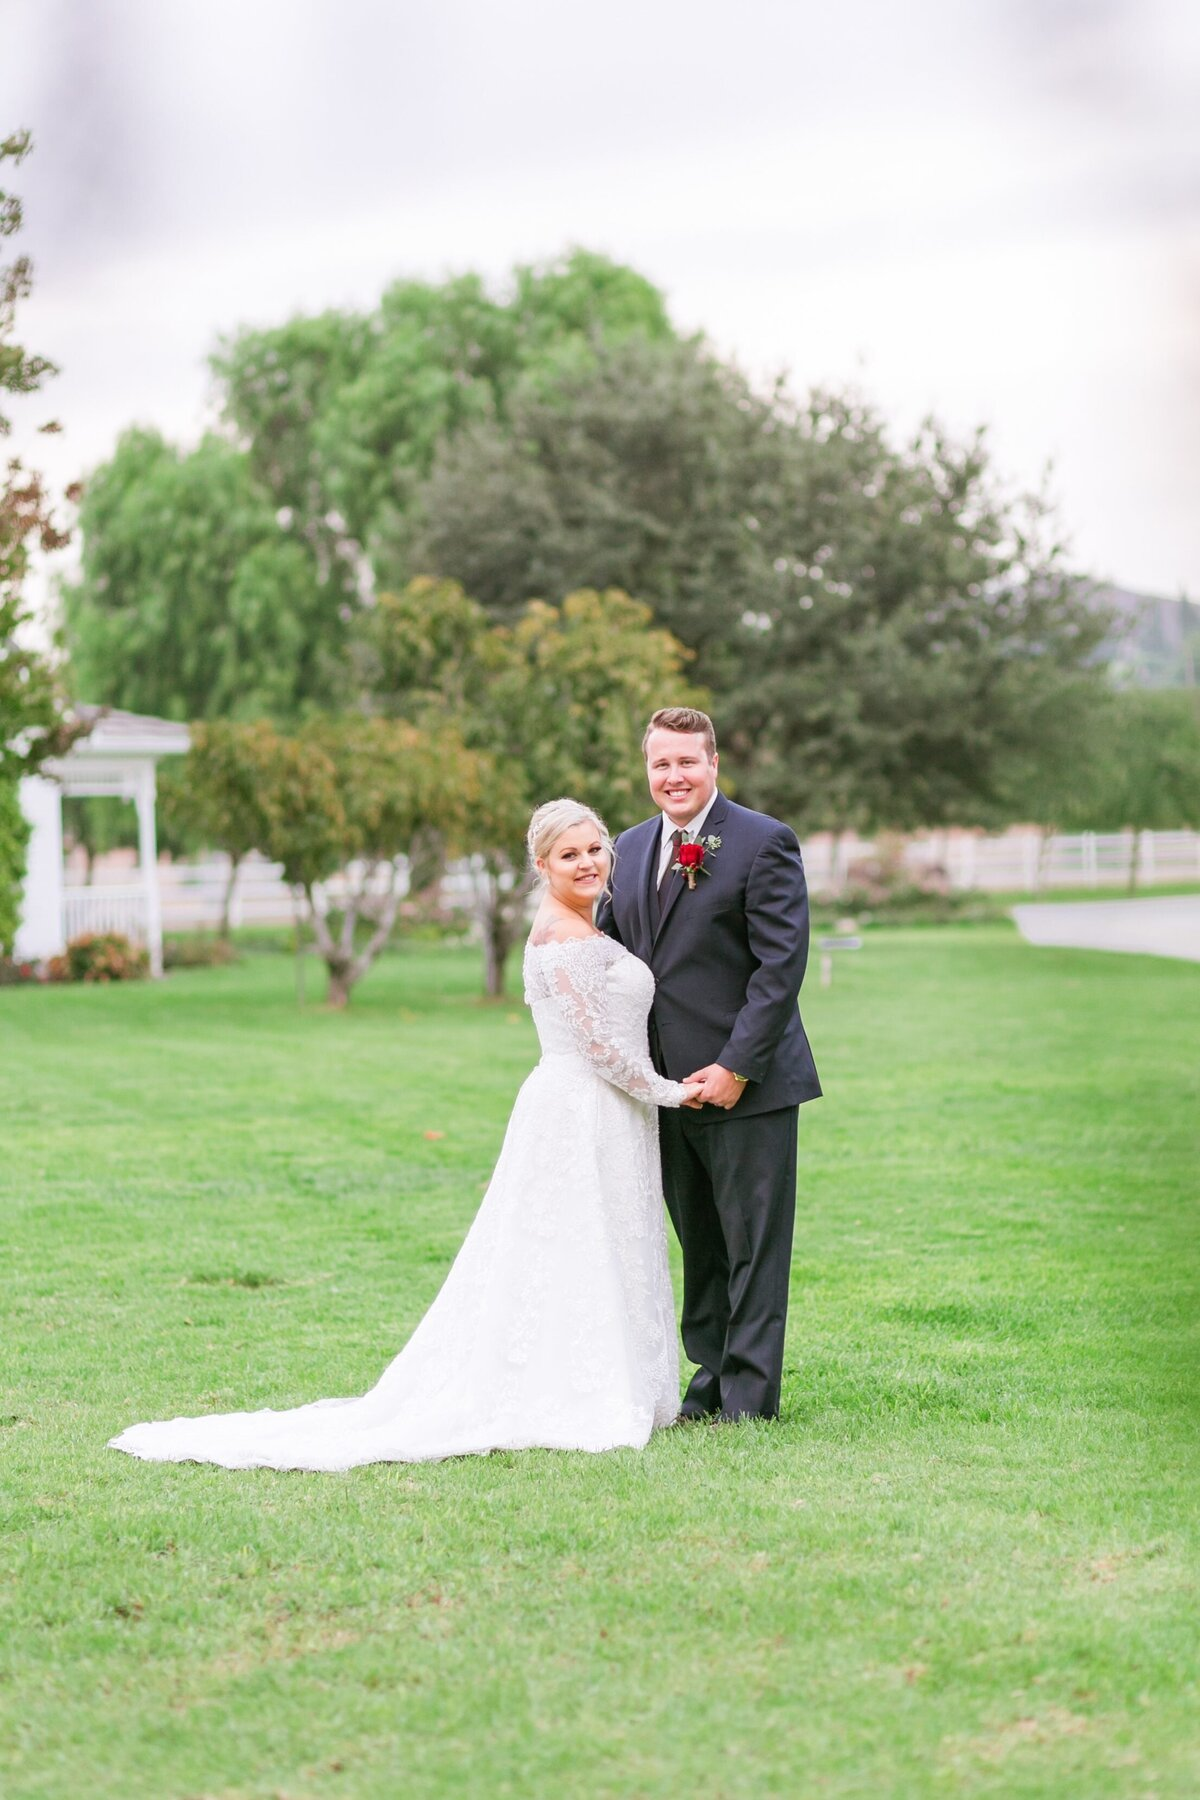 Kelli-Bee-Photography-Gallery-Farm-Southern-CA-Norco-Rustic-Wedding-Luxury-Lifestyle-Photographer-Lauren-Ben-0047